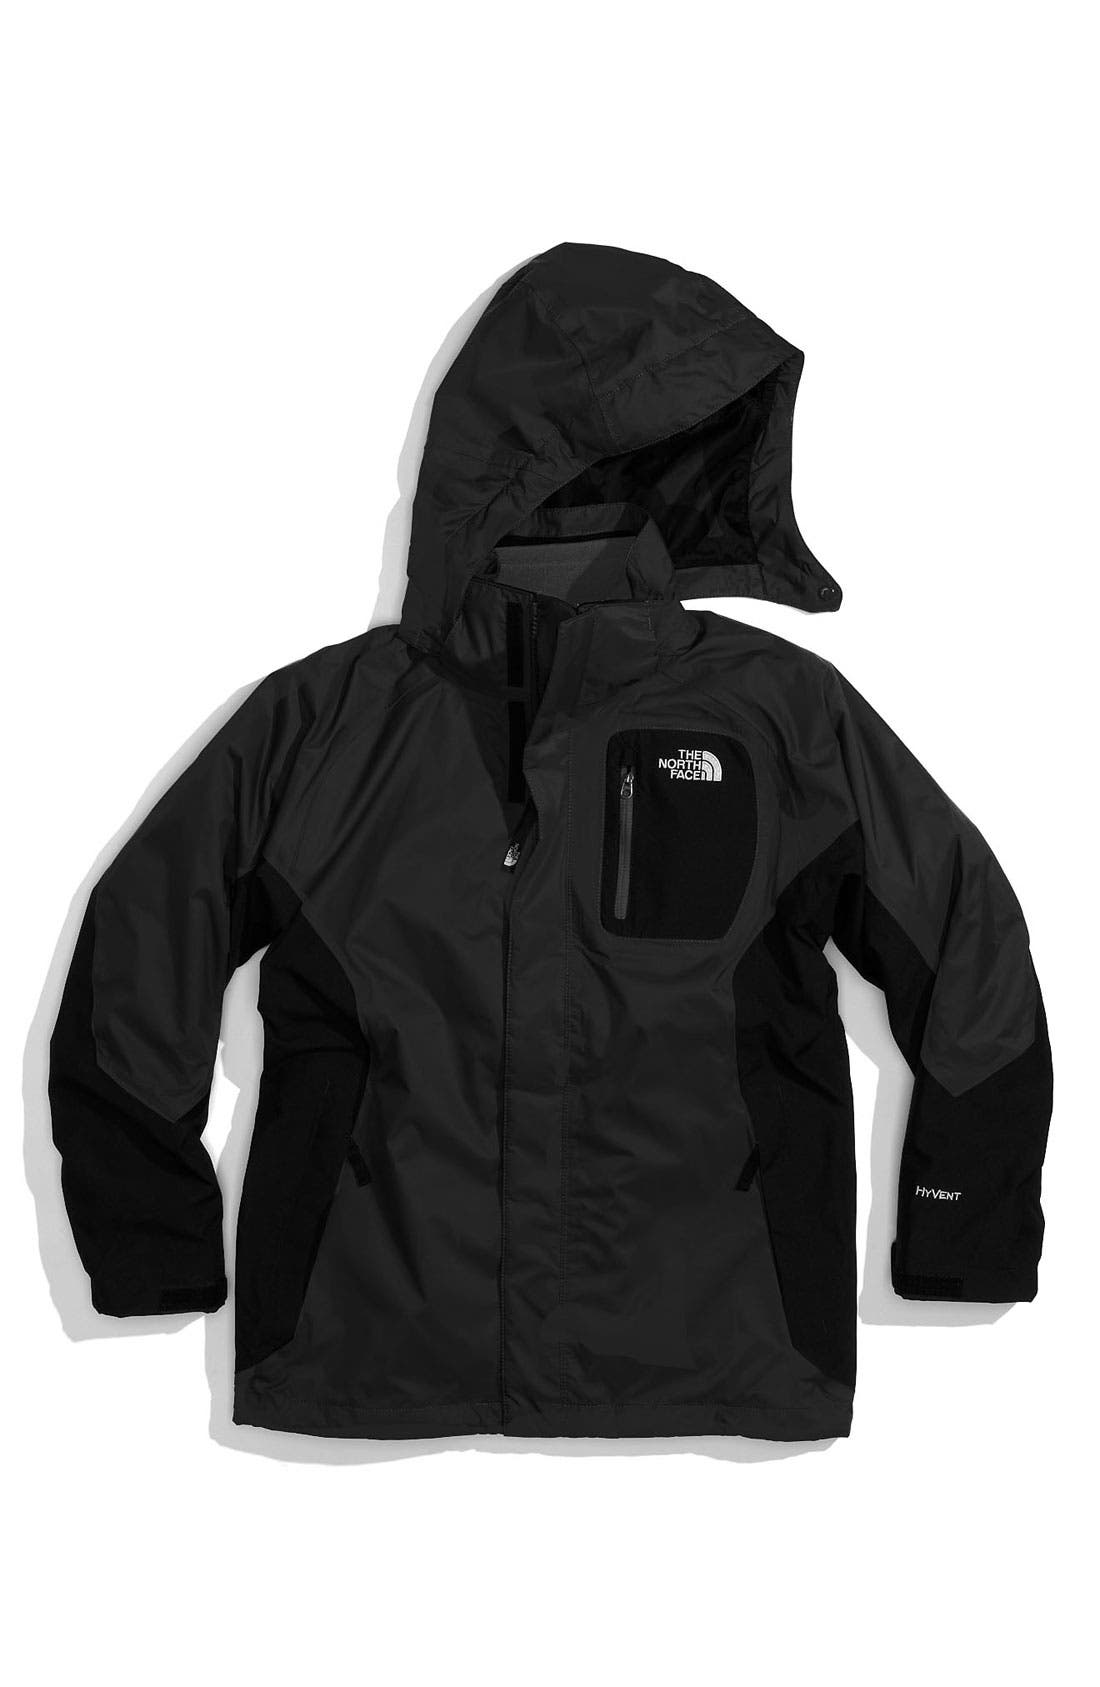 Alternate Image 1 Selected - The North Face 'Atlas' TriClimate® 3-in-1 Jacket (Big Boys)